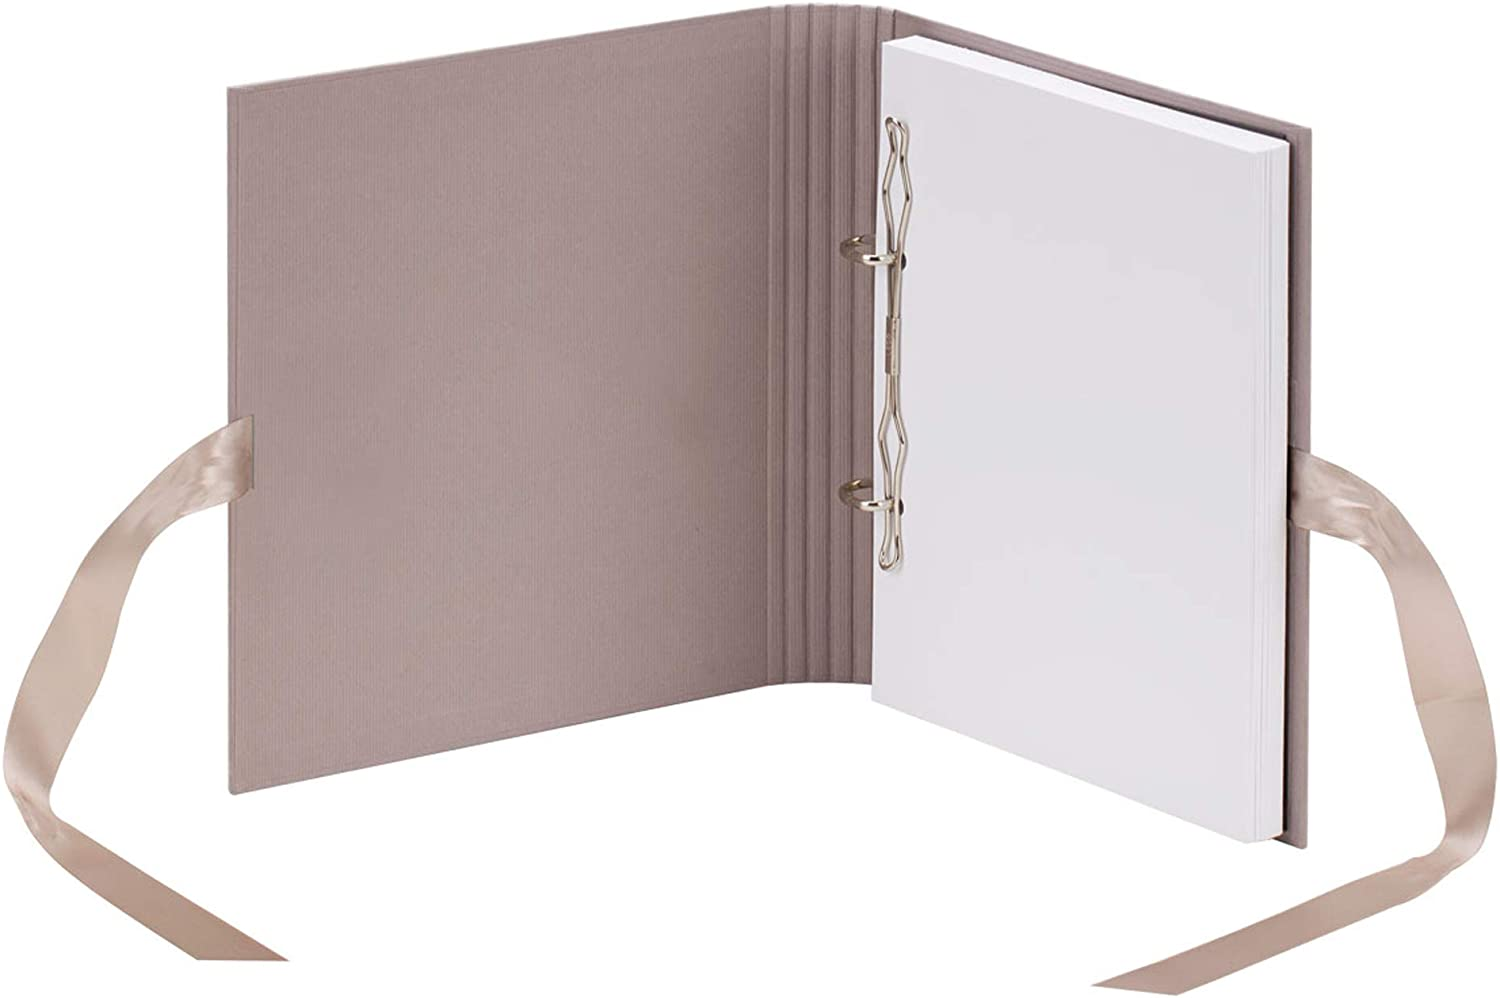 R/össler Photo Ring Book with 2 Rings 230 x 210 mm 50 Pages with Ribbon Powder Pink